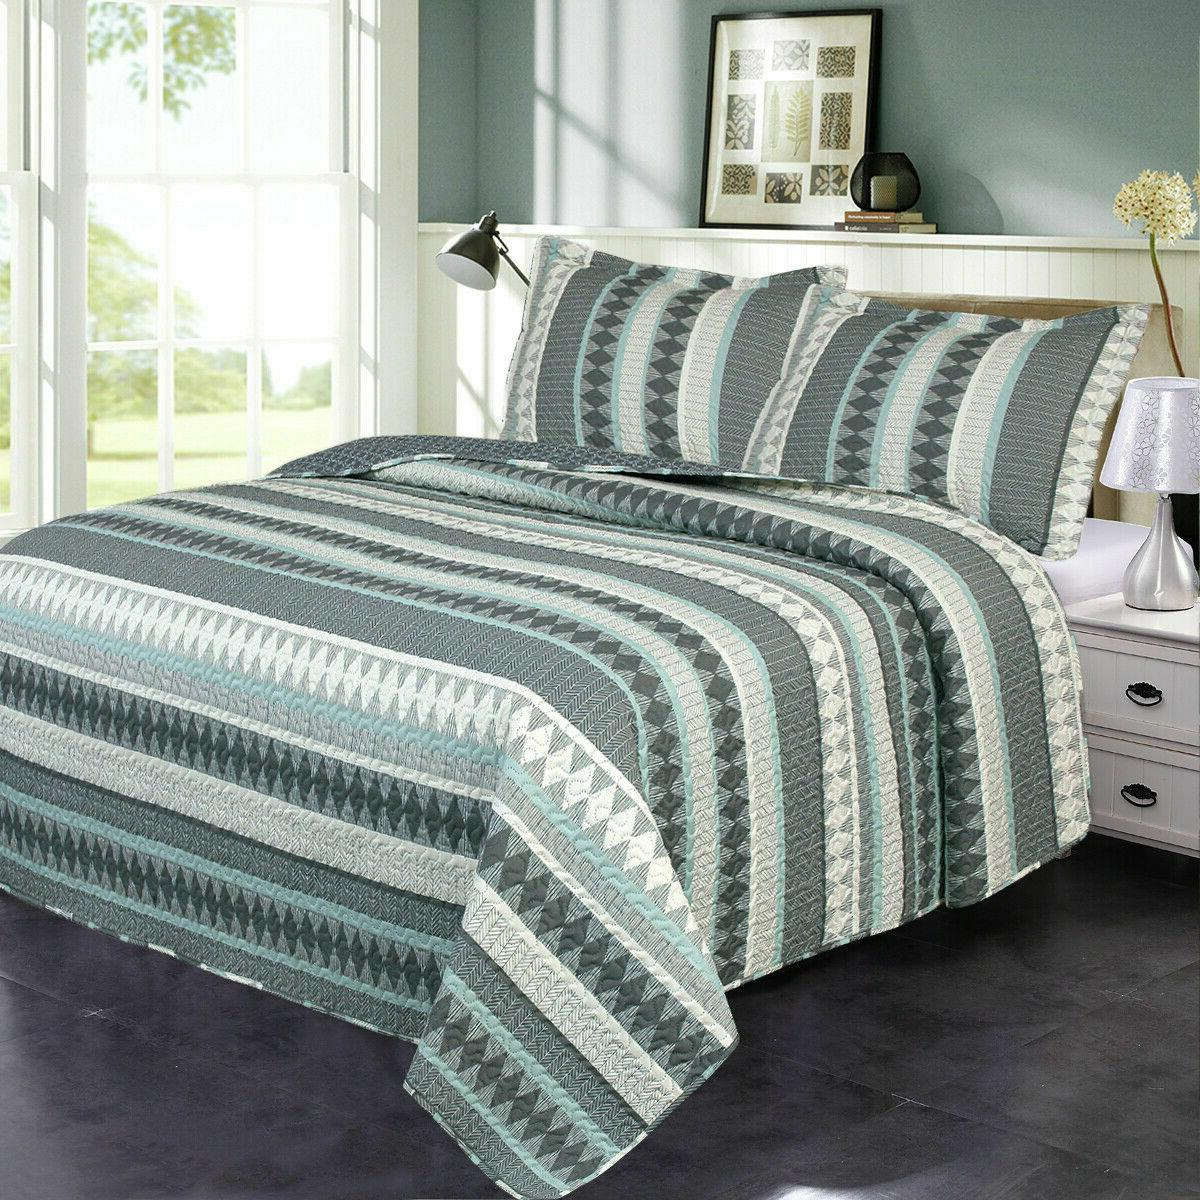 3-Piece Patchwork Quilt Reversible Bedspreads